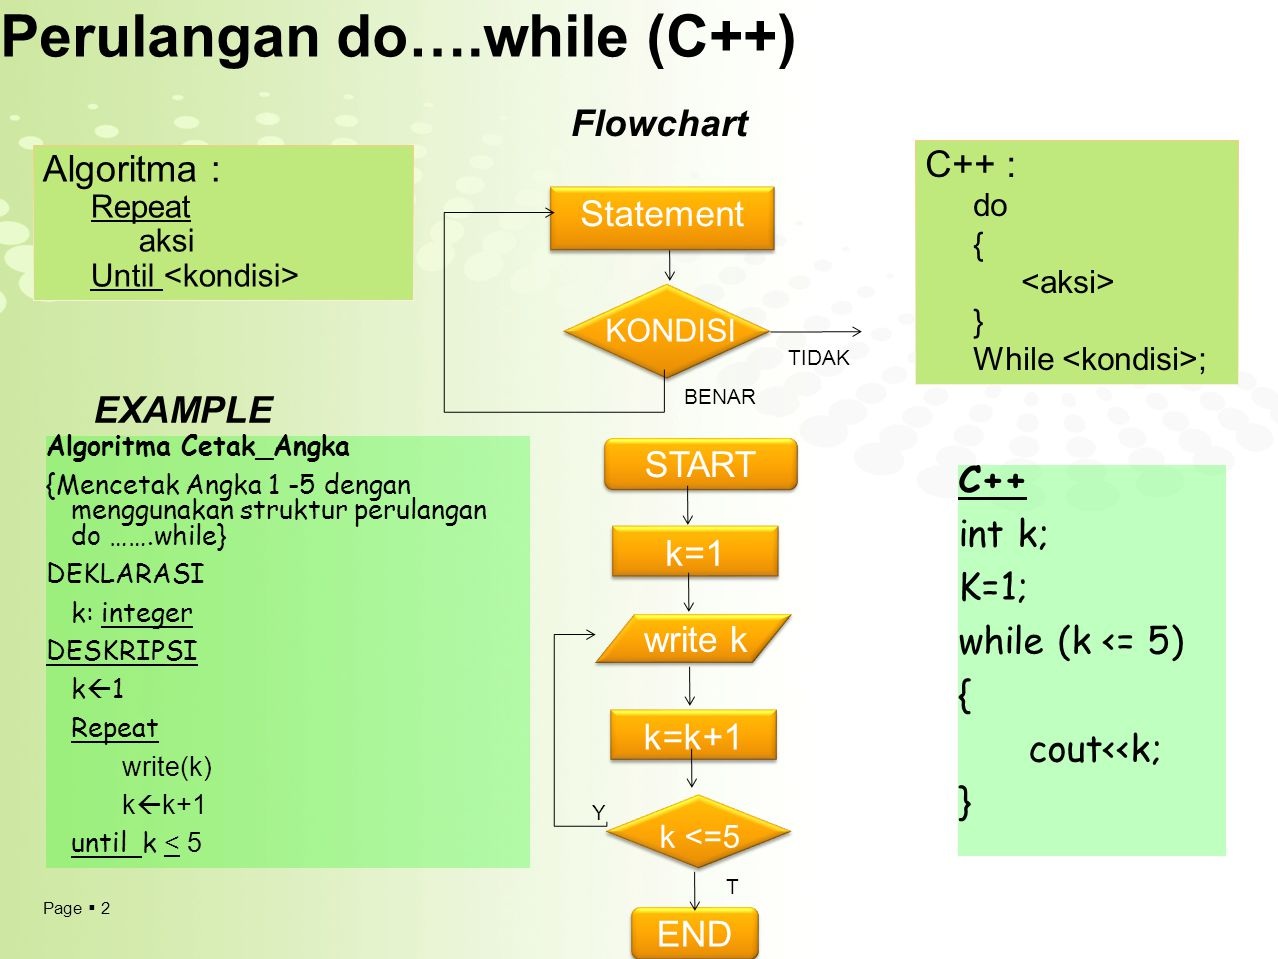 Page  2 Perulangan do….while (C++) Algoritma : Repeat aksi Until C++ : do { } While ; Flowchart KONDISI BENAR TIDAK Statement EXAMPLE Algoritma Cetak_Angka {Mencetak Angka 1 -5 dengan menggunakan struktur perulangan do …….while} DEKLARASI k: integer DESKRIPSI k  1 Repeat write(k) k  k+1 until k < 5 k <=5 k=k+1 START write k END Y C++ int k; K=1; while (k <= 5) { cout<<k; } T k=1